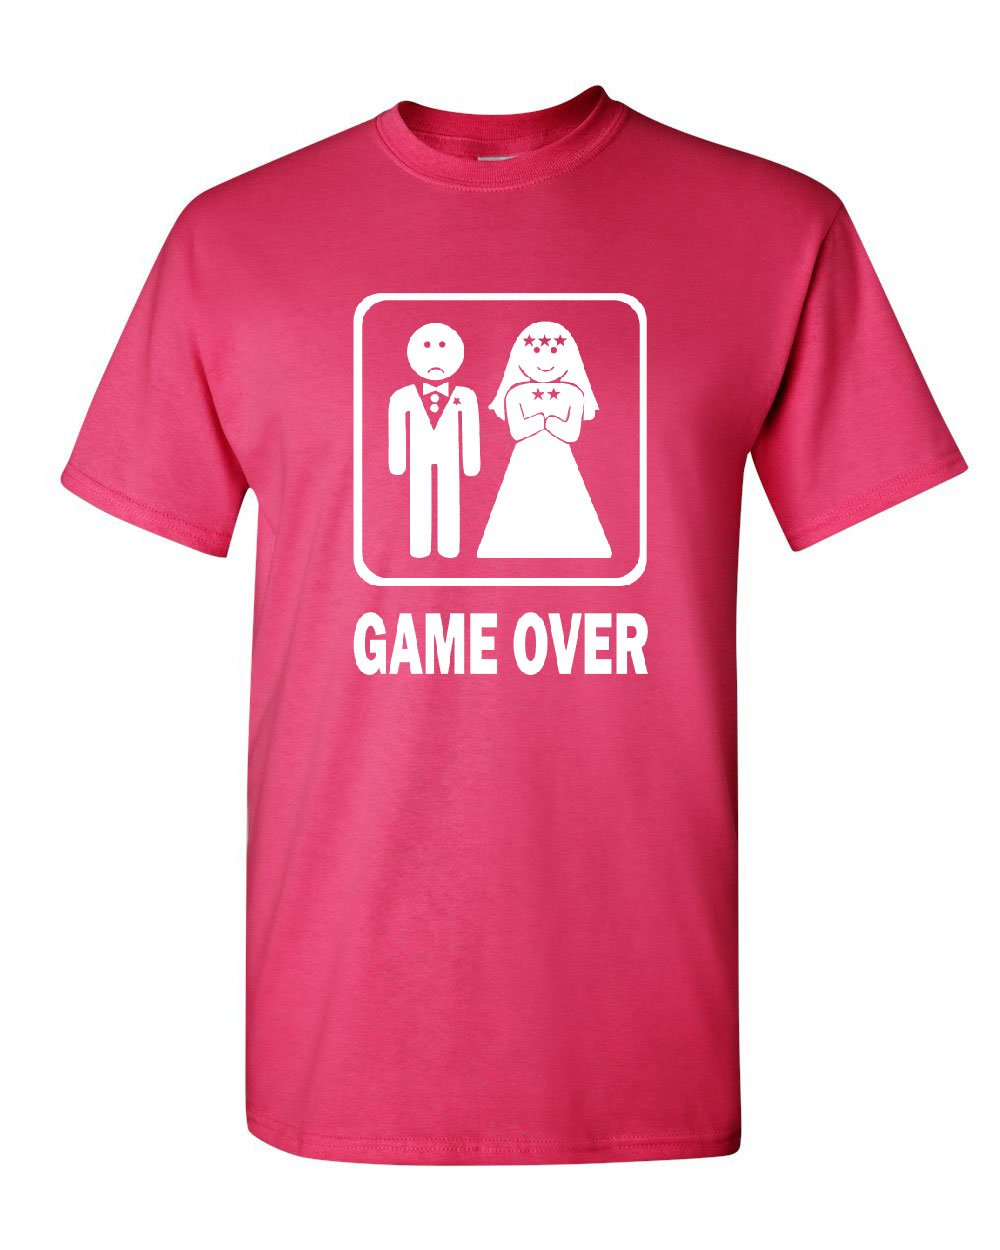 Game Over Funny T-Shirt Groom And Bride Wedding Tee Shirt Hot Pink XL